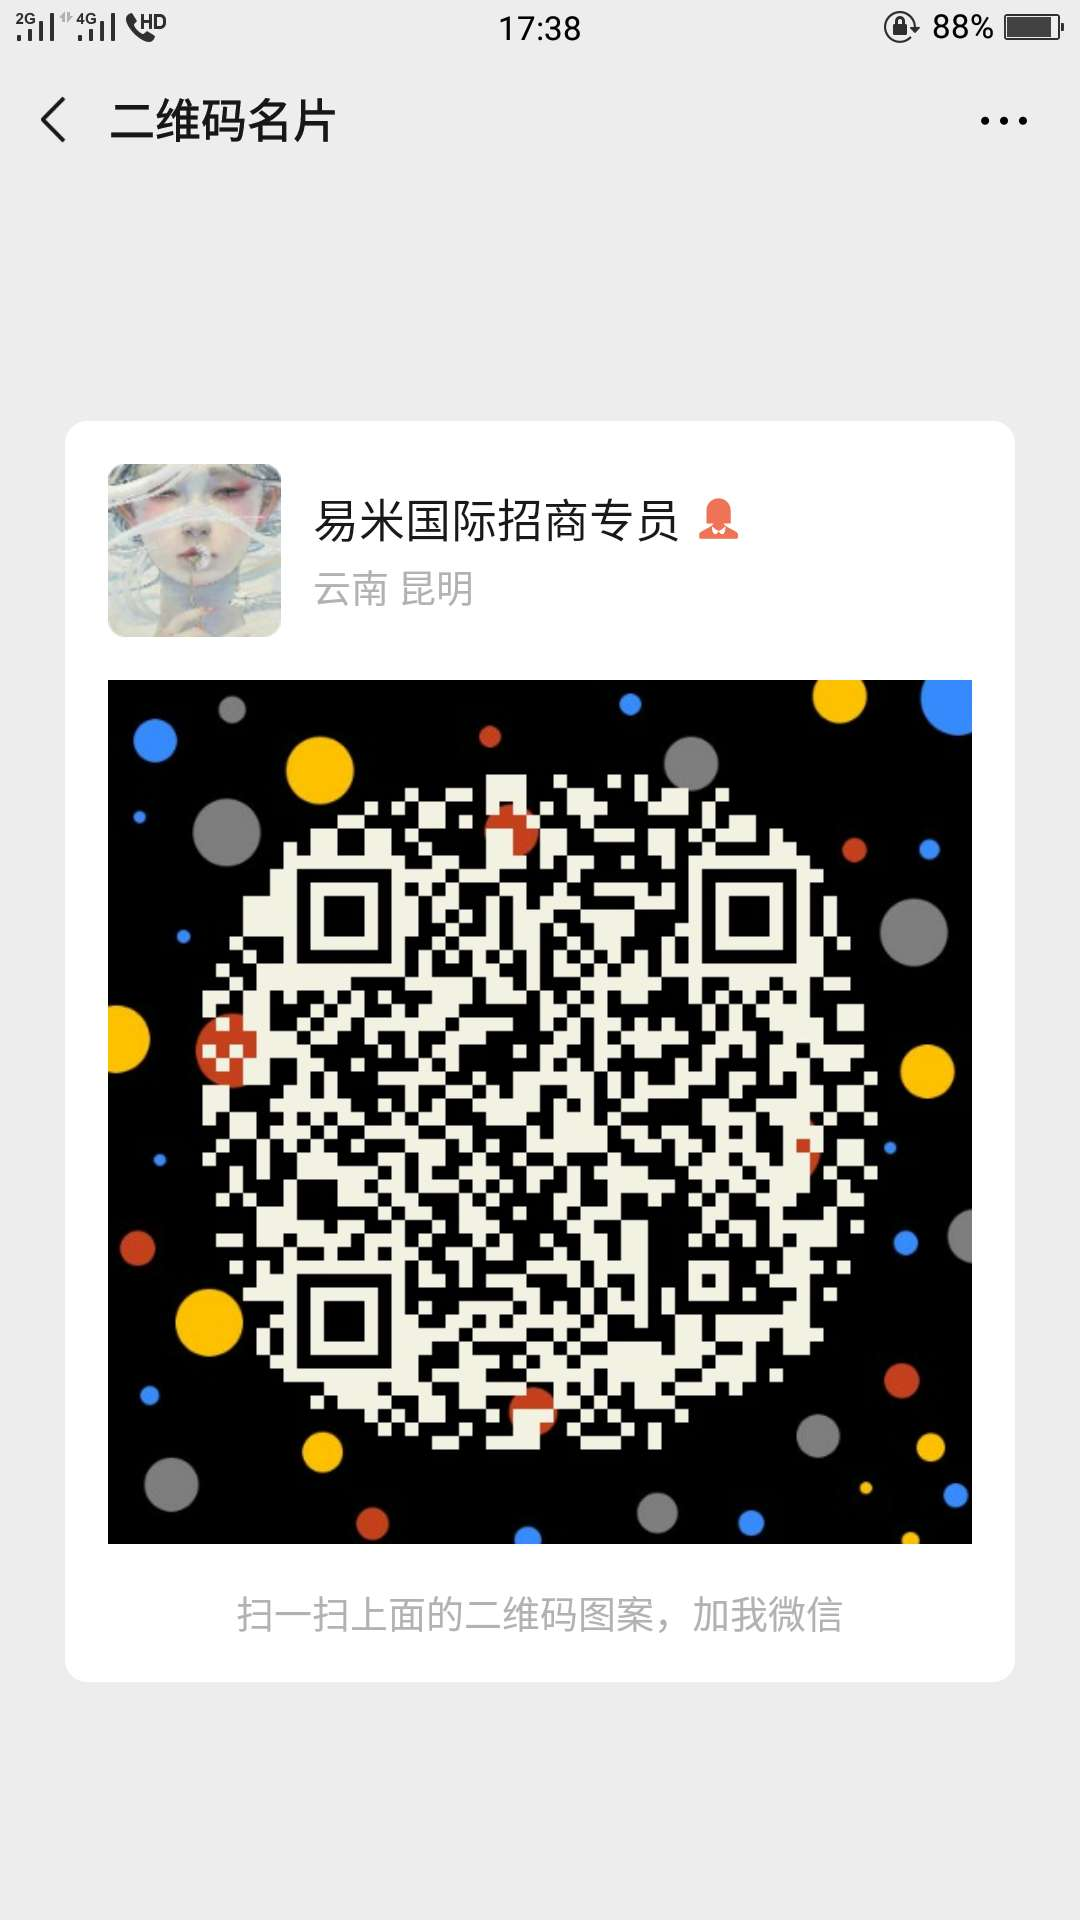 .\..\..\..\..\..\..\AppData\Local\Temp\WeChat Files\fb562ba662d3b20f0b090c88f265f45b_.jpg